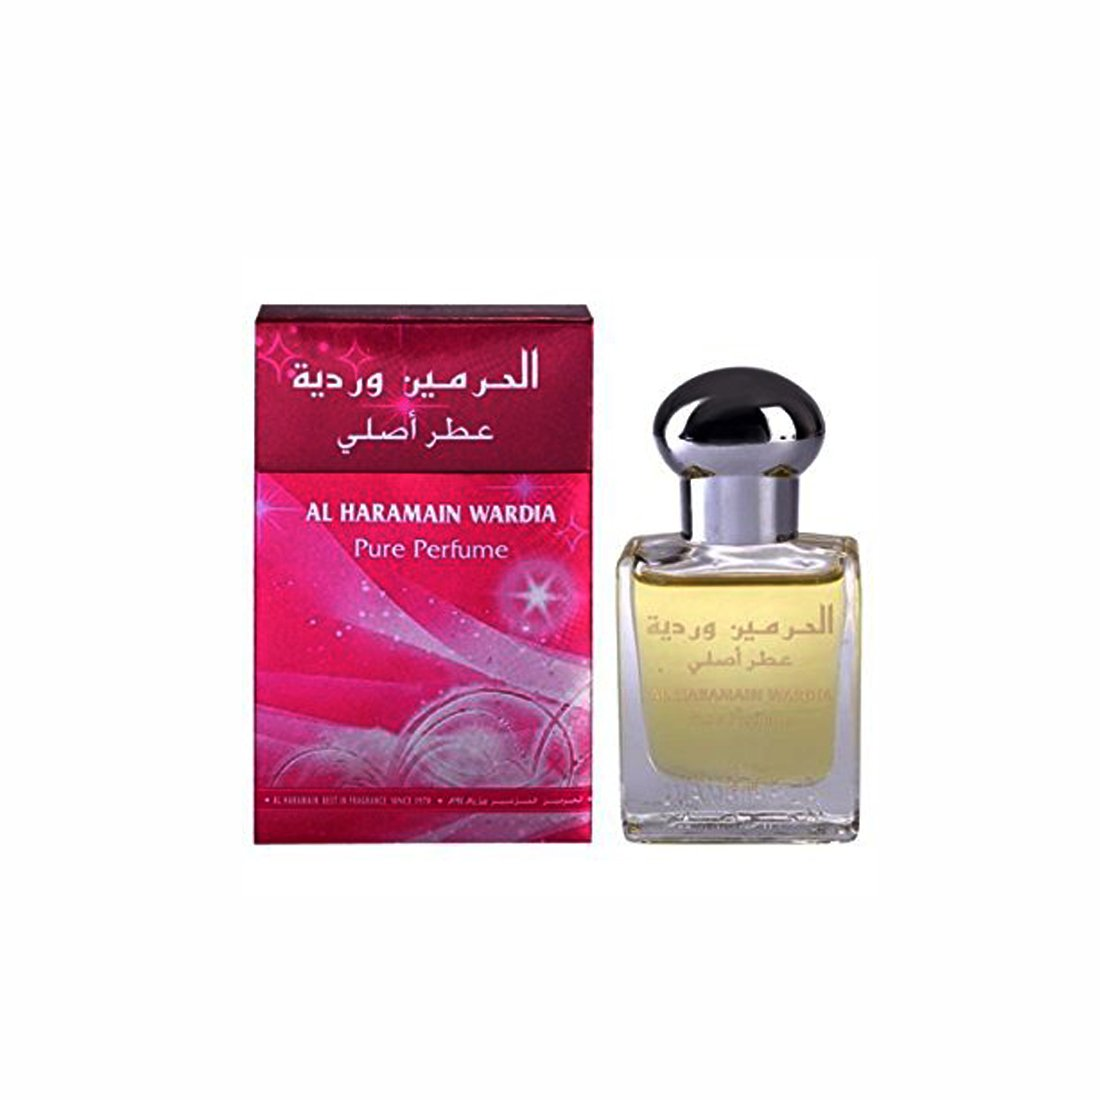 Al Haramain Wardia Roll On Attar - 15 ml